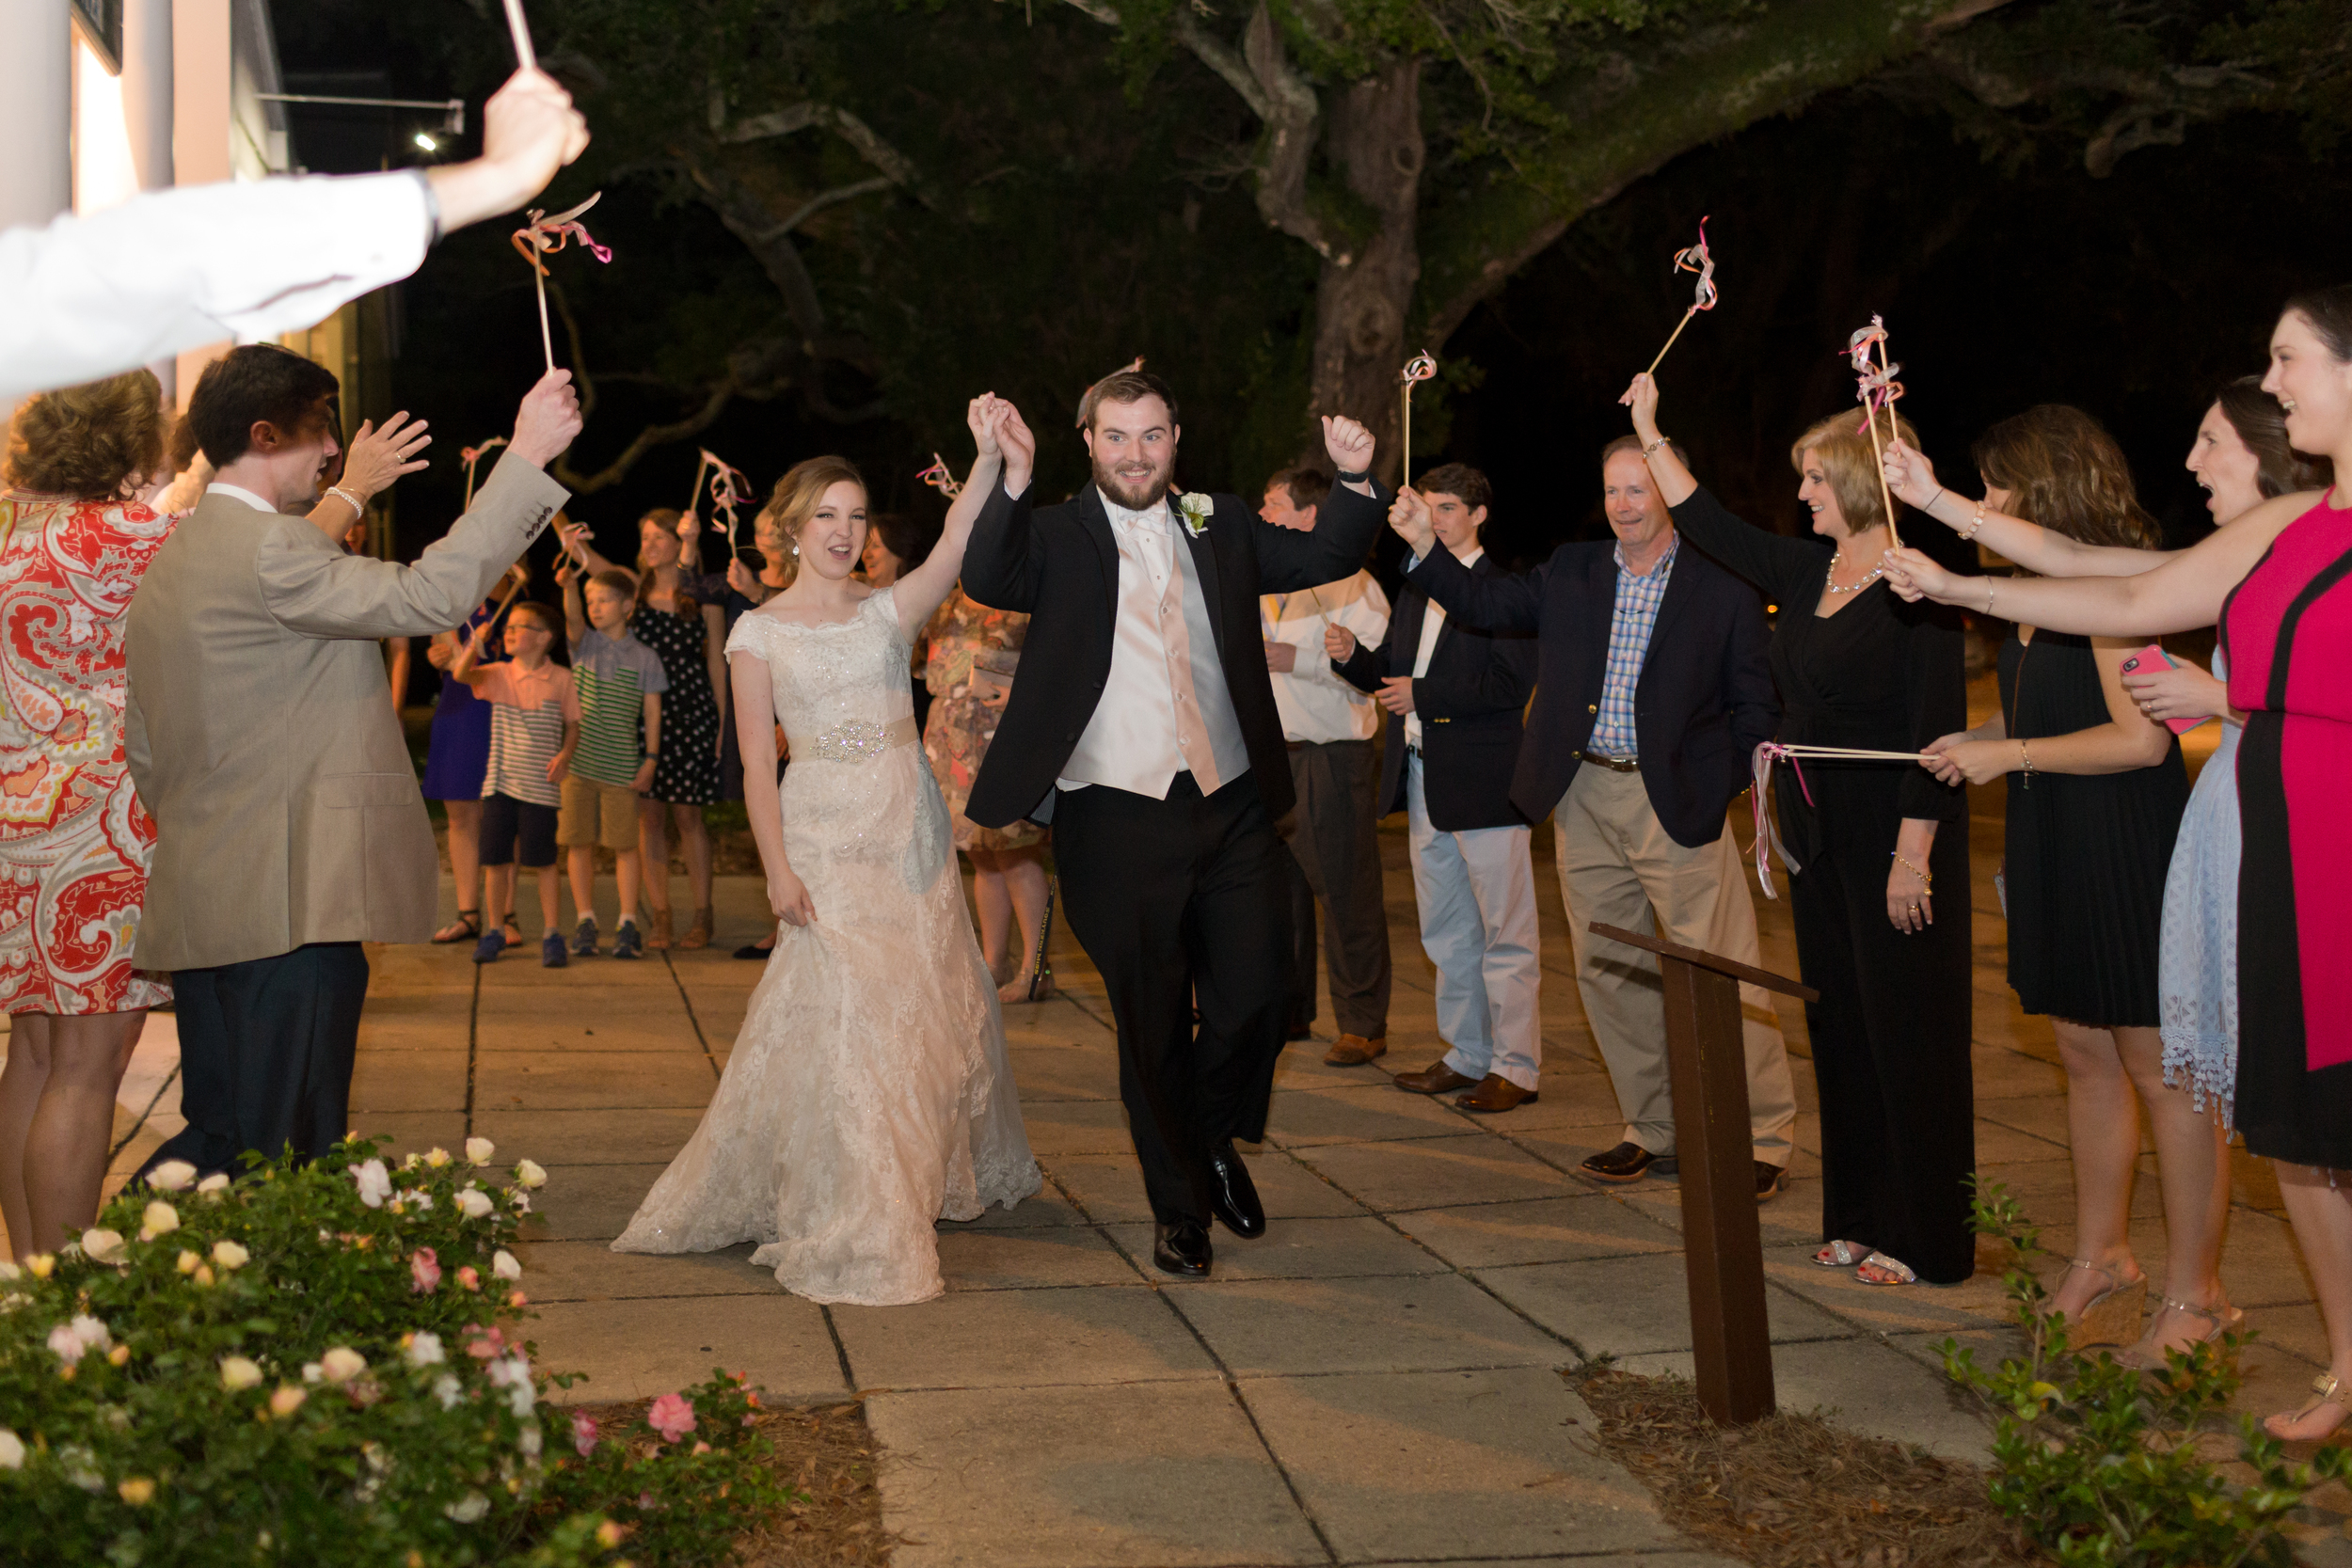 wedding exit with wedding wands (Southern tradition)